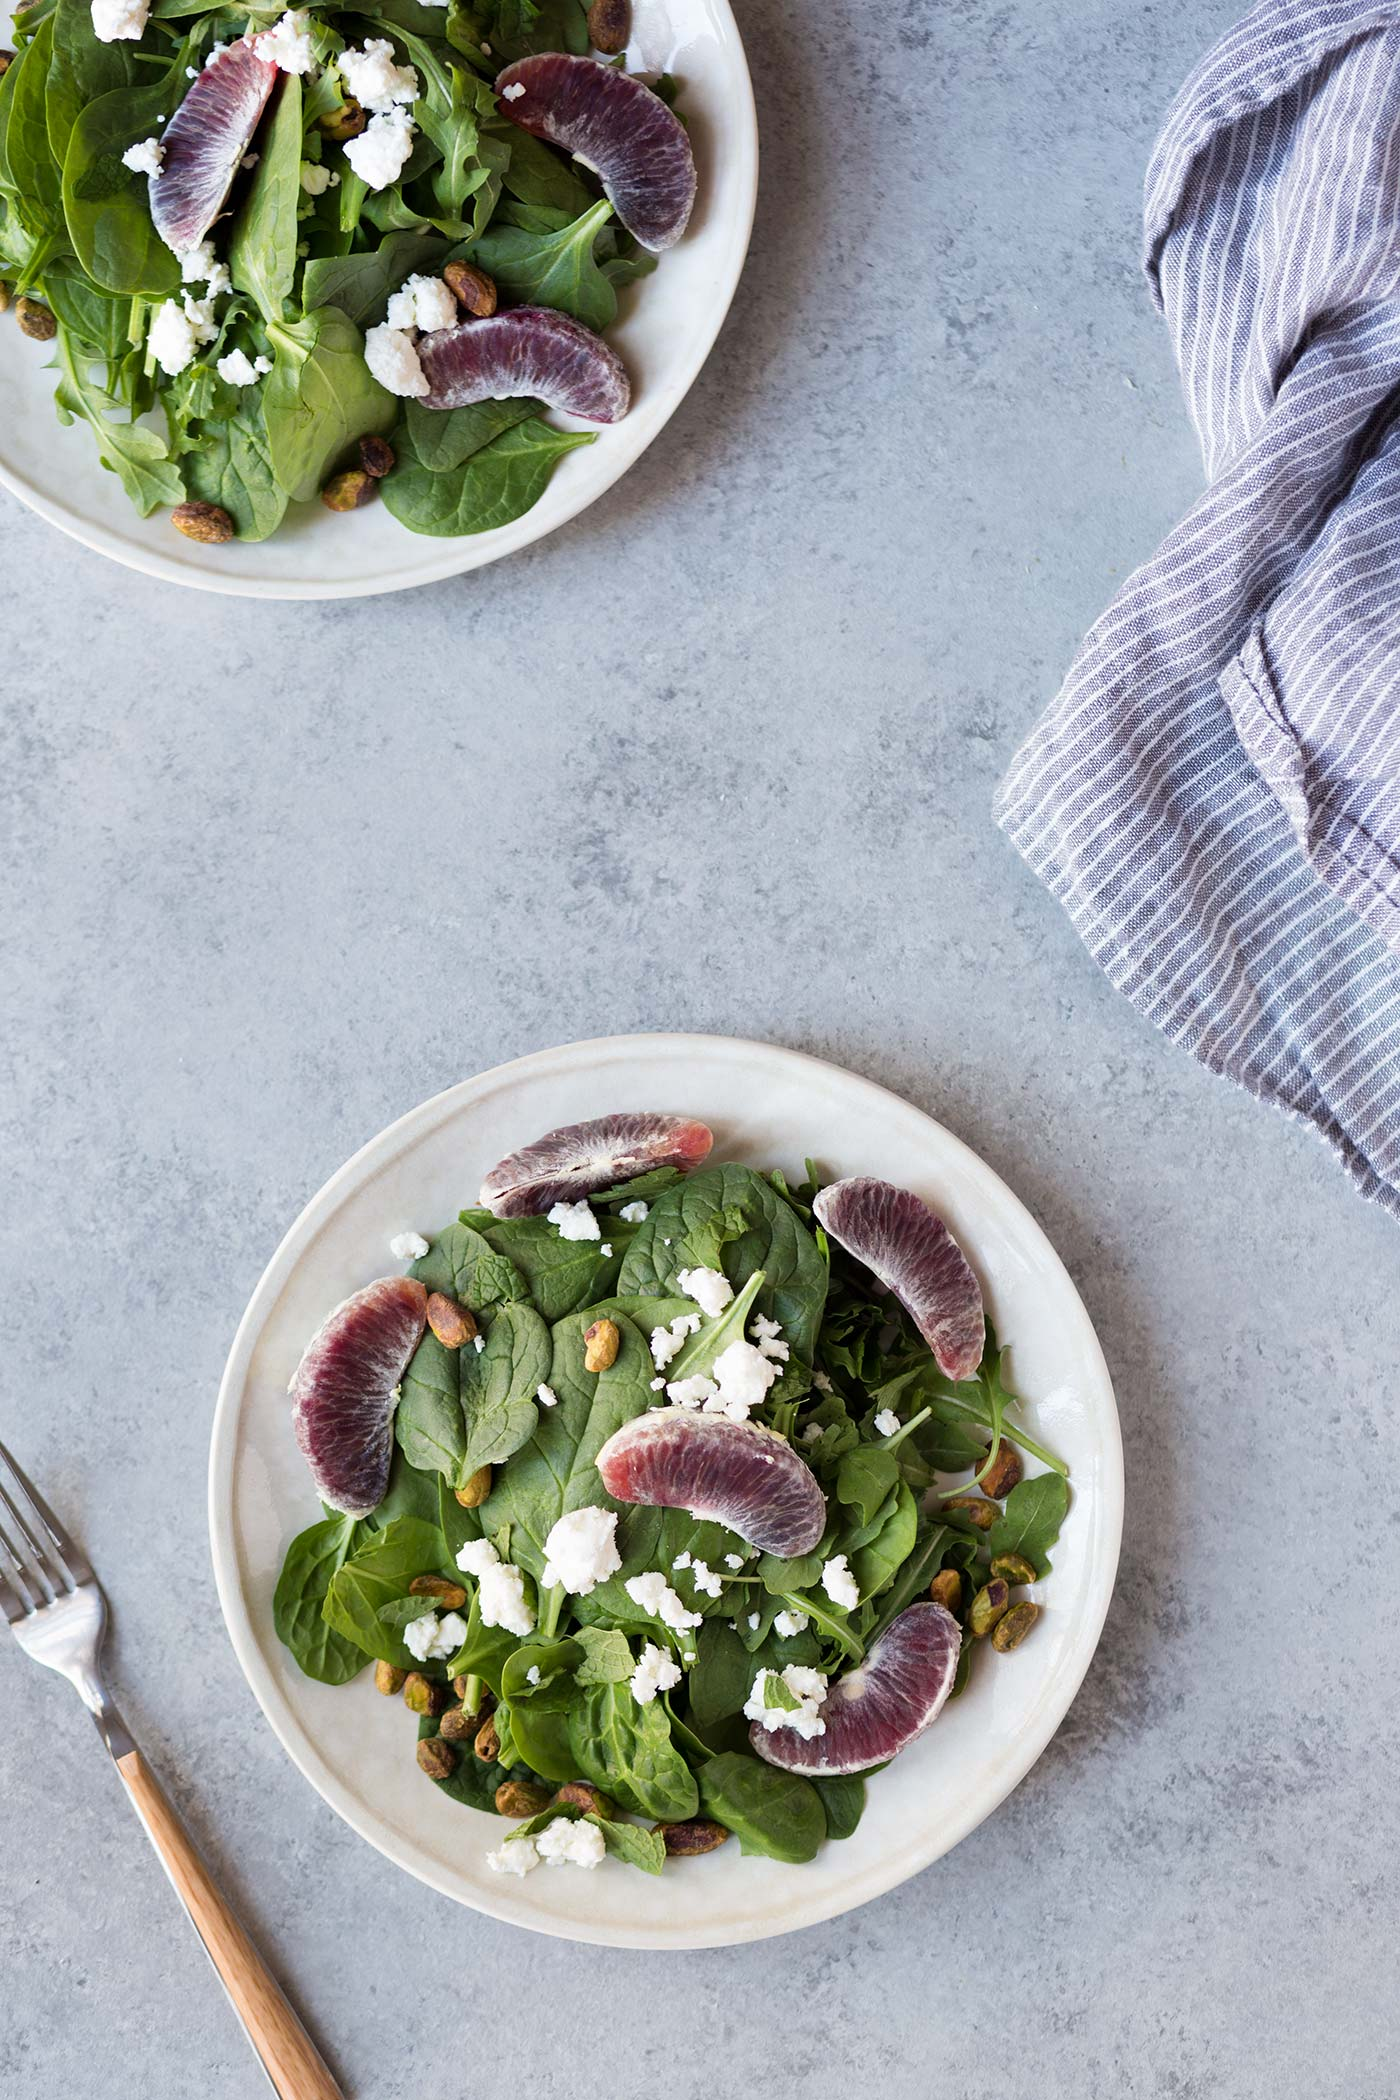 This Mixed Greens Salad with Feta, Blood Oranges, Mint & Pistachios has a perfect balance of flavors, textures & colors! Get the recipe from Savory Simple.